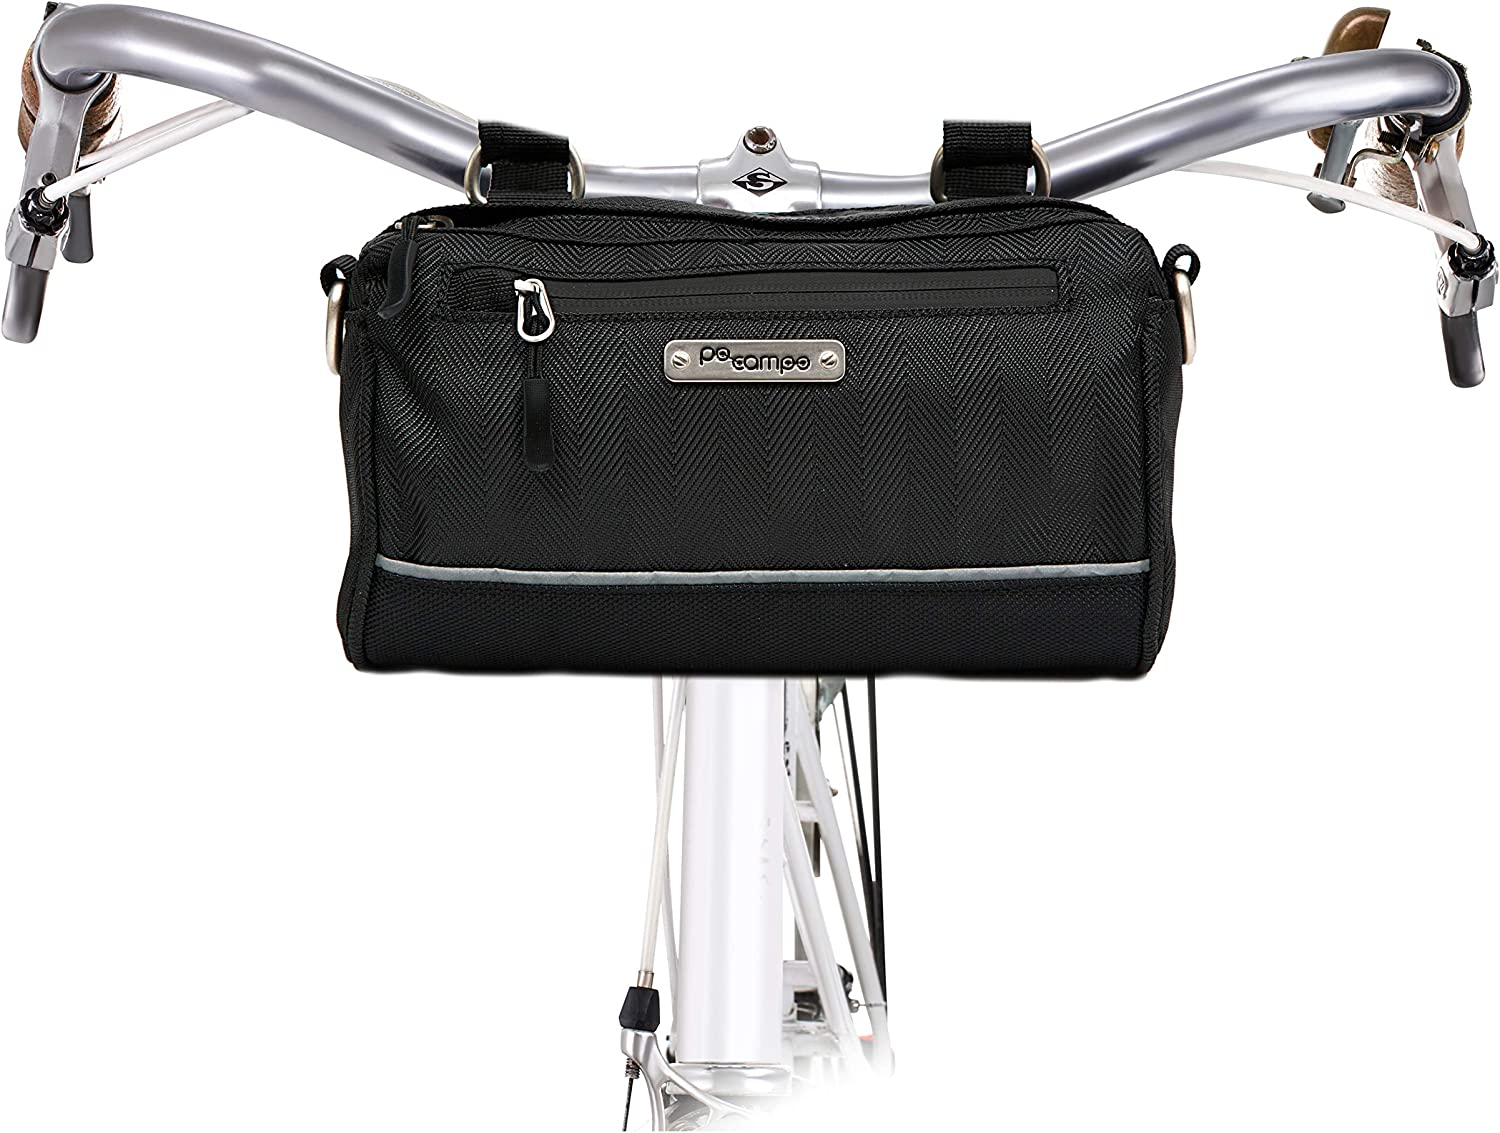 Multiple Colors Po Campo Kinga Handlebar Bike Bag Purse Weatherproof Water Resistant Front Bicycle Bag That Converts to a Crossbody Bag